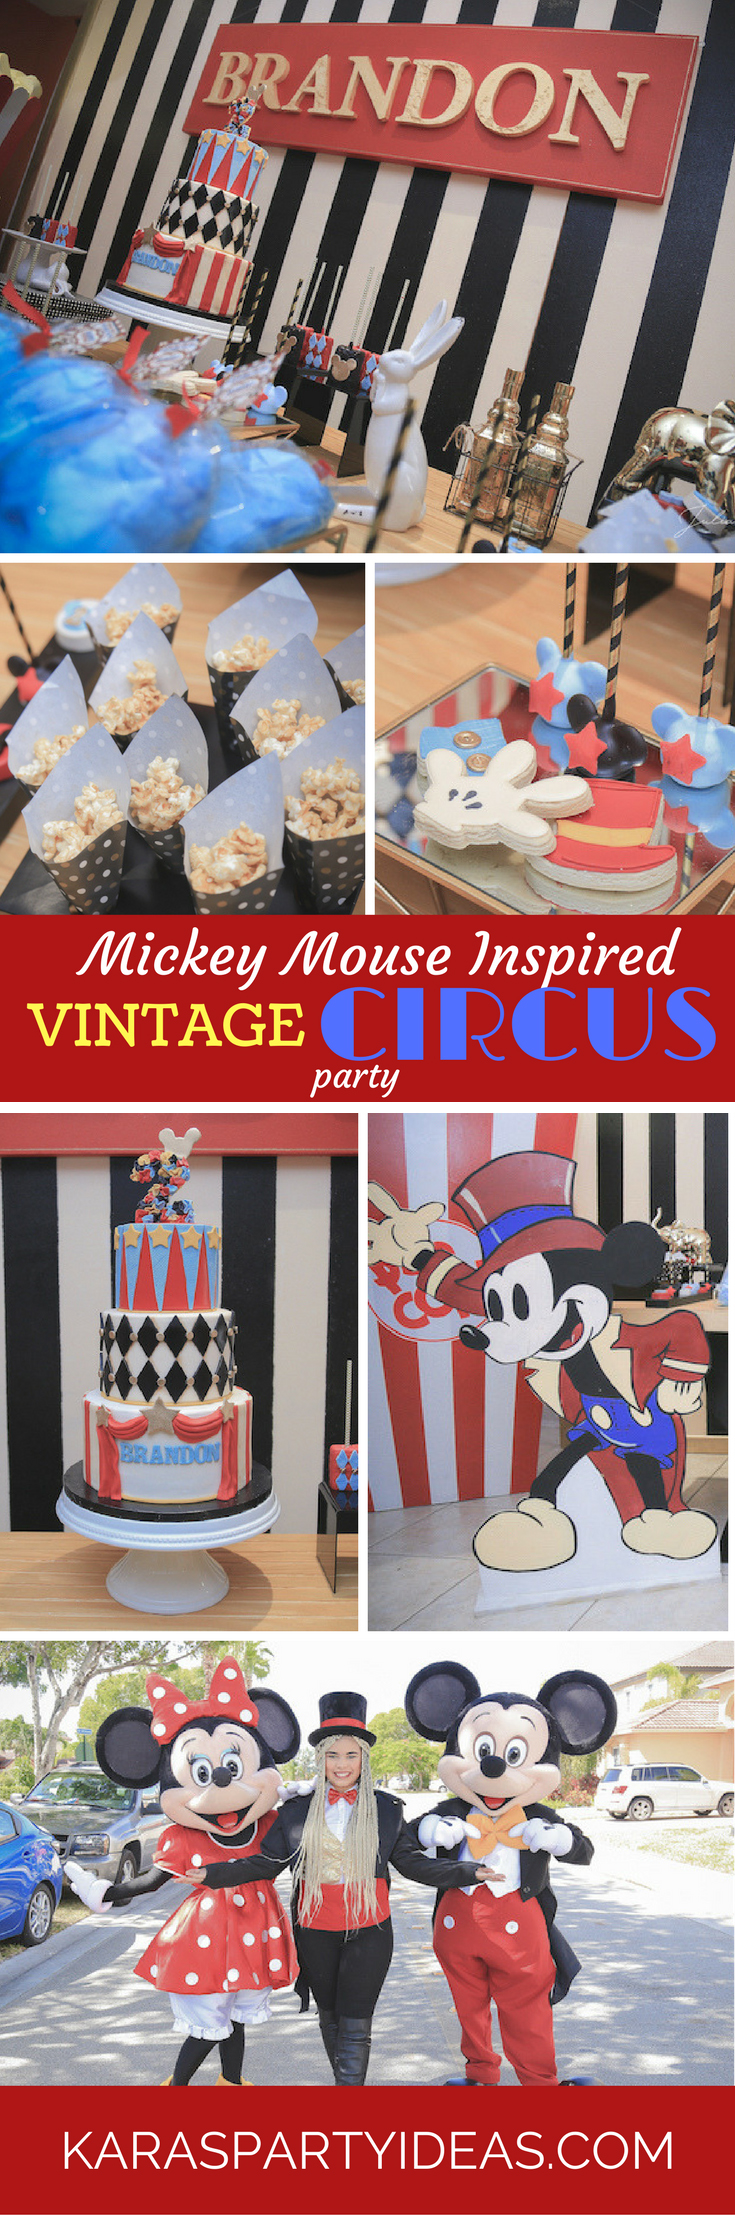 Mickey Mouse Inspired Vintage Circus Party via Kara's Party Ideas - KarasPartyIdeas.com